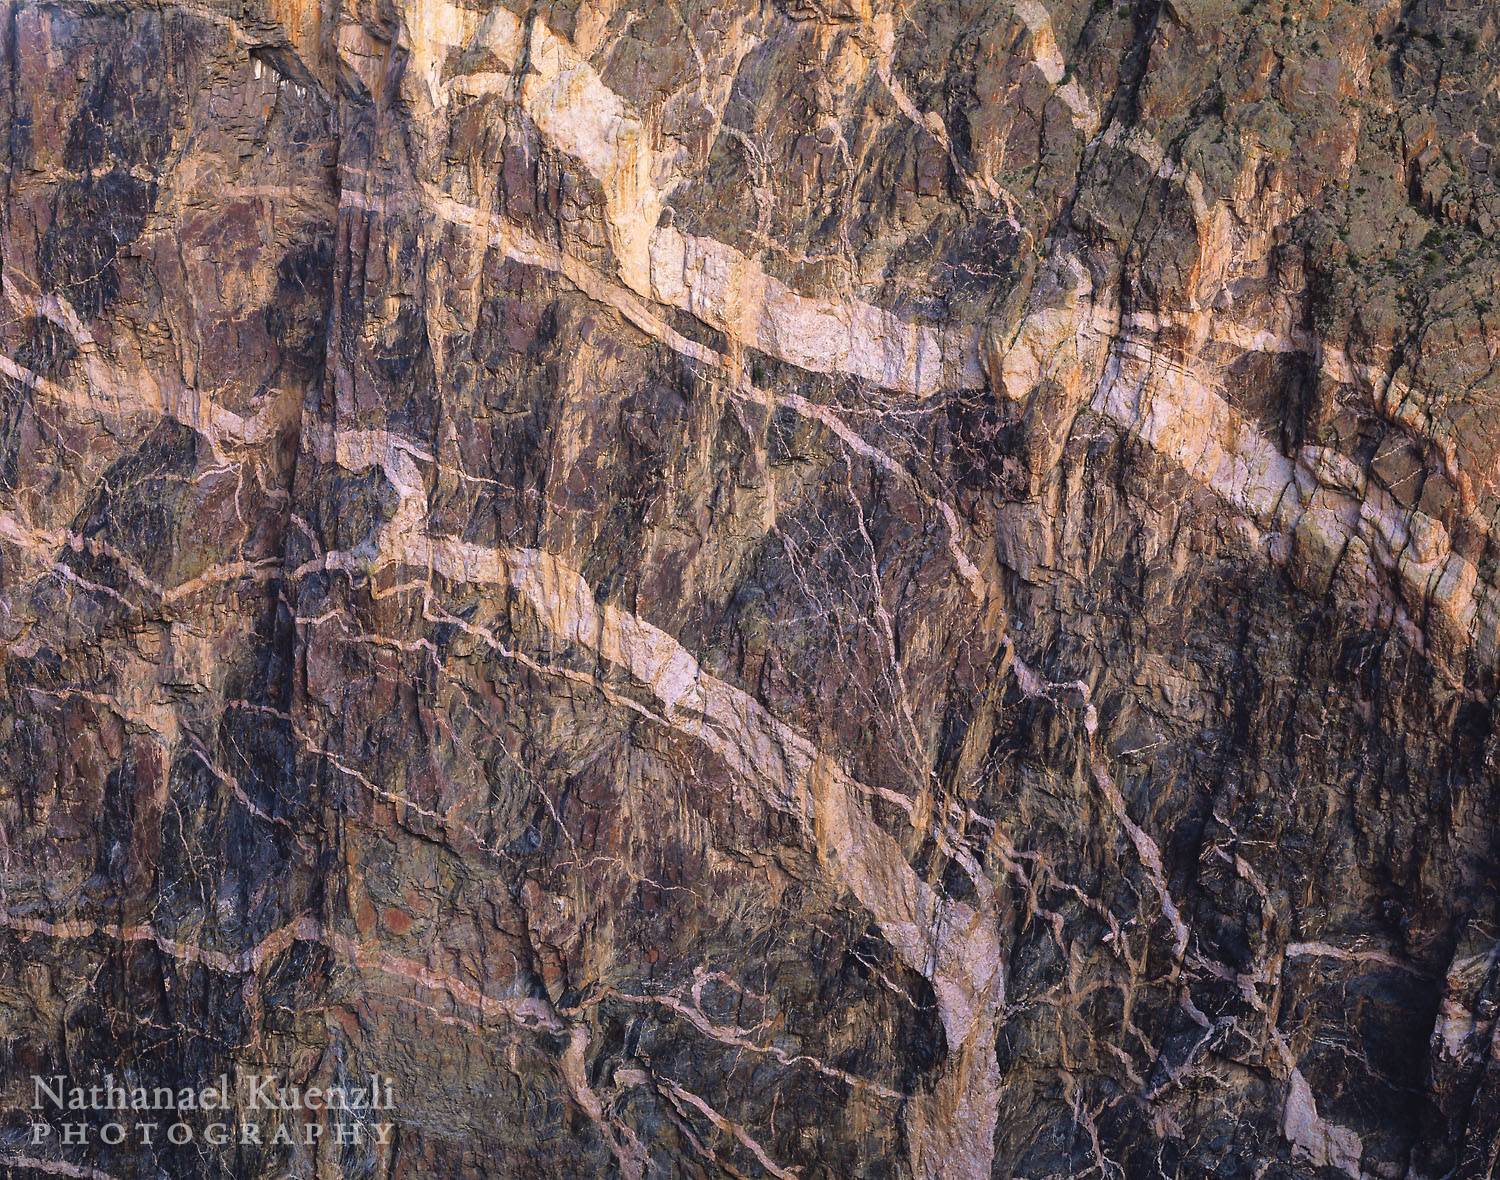 Painted Wall, Black Canyon of the Gunnison National Park, Colorado, May 2004